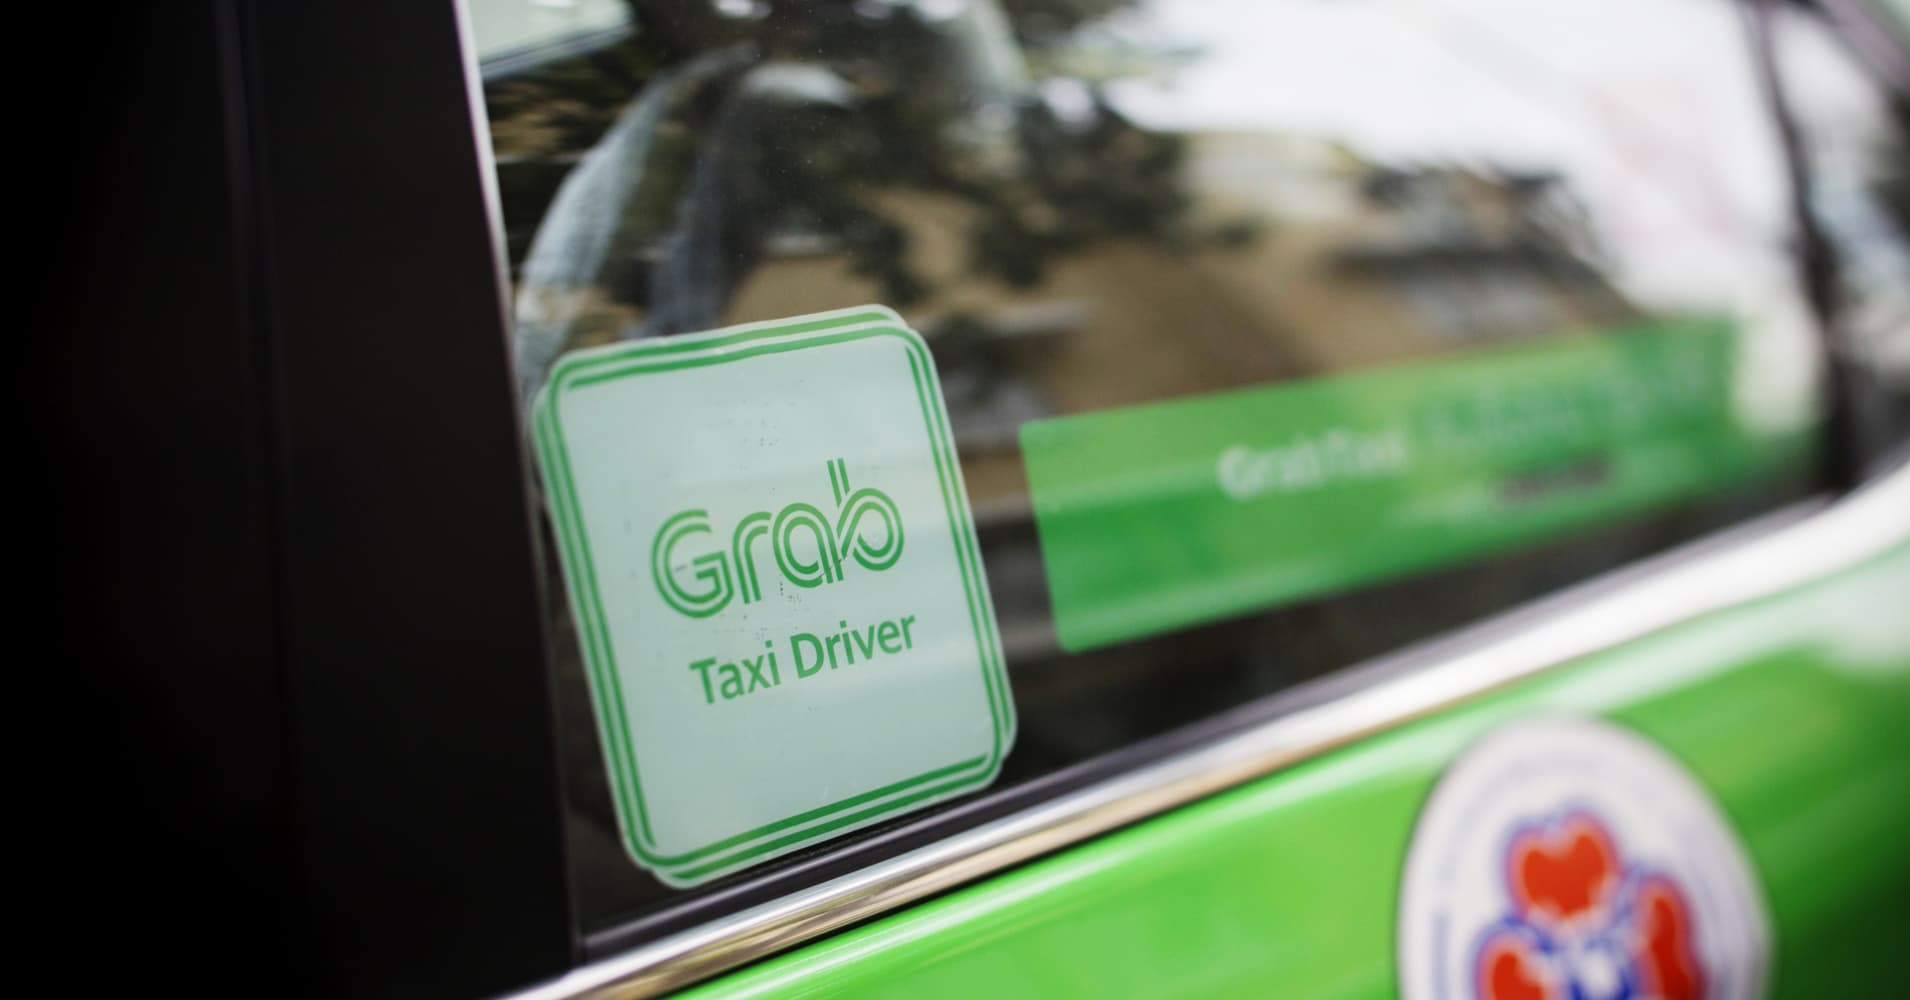 Grab is now valued at $14 billion after landing $1.46 billion from SoftBank's Vision Fund